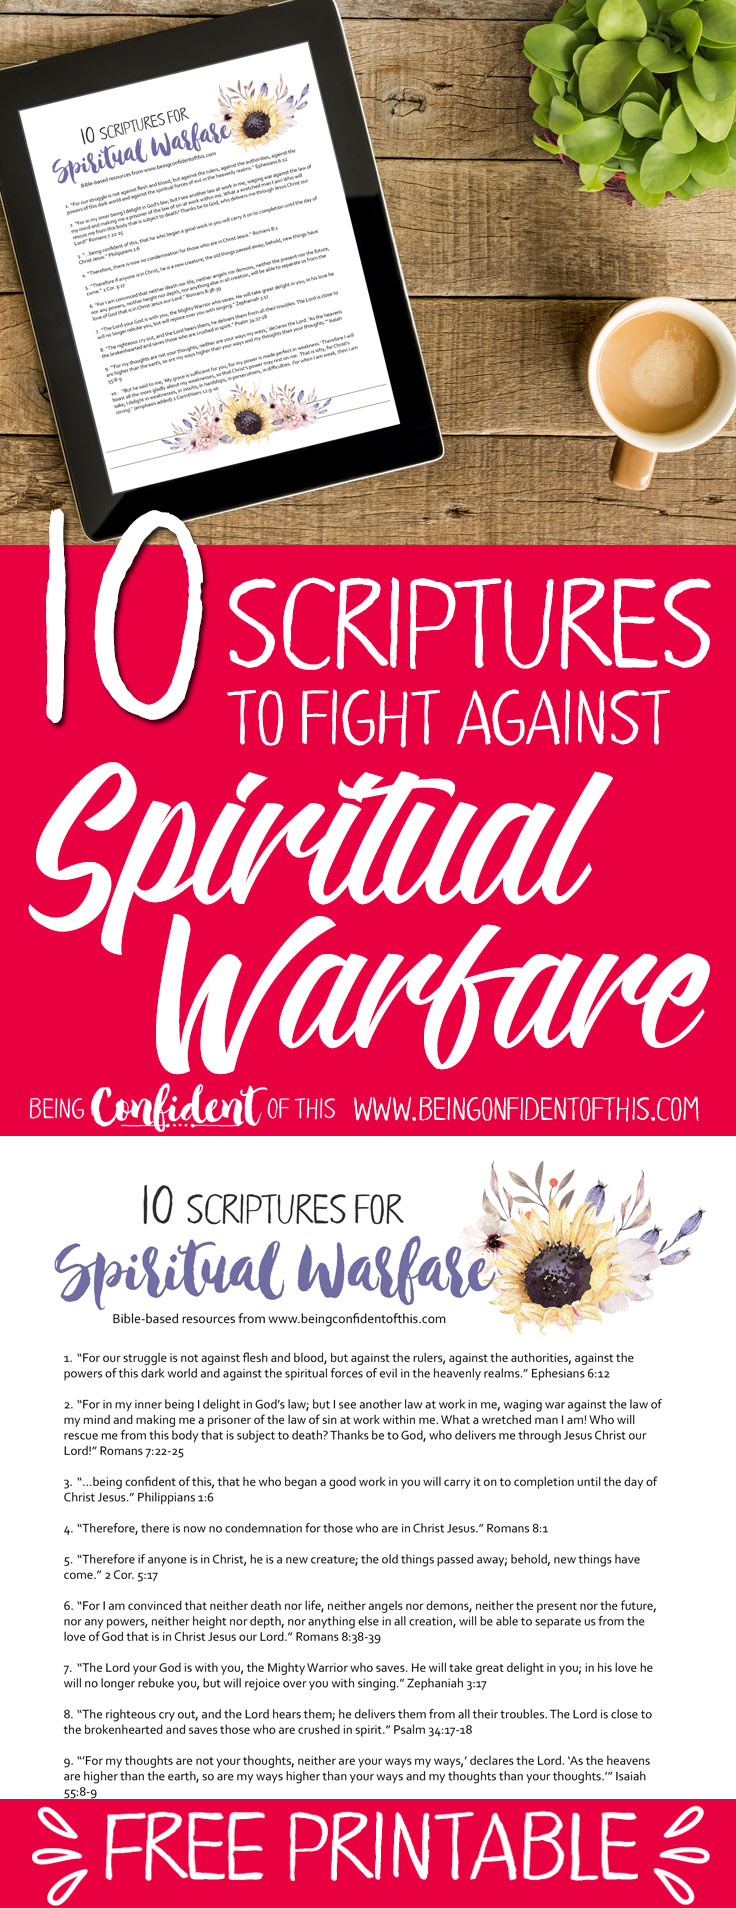 Use these Bible verses to fight back when you experience spiritual warfare. Hang this free printable in a highly visible area as a constant reminder to use your Spiritual Armor!  Bible verses|spiritual warfare|fighter verses|encouraging scripture|faith-based resources for women|christian women|free printables| Bible study |devotionals | help for discouraged women |work-in-progress faith